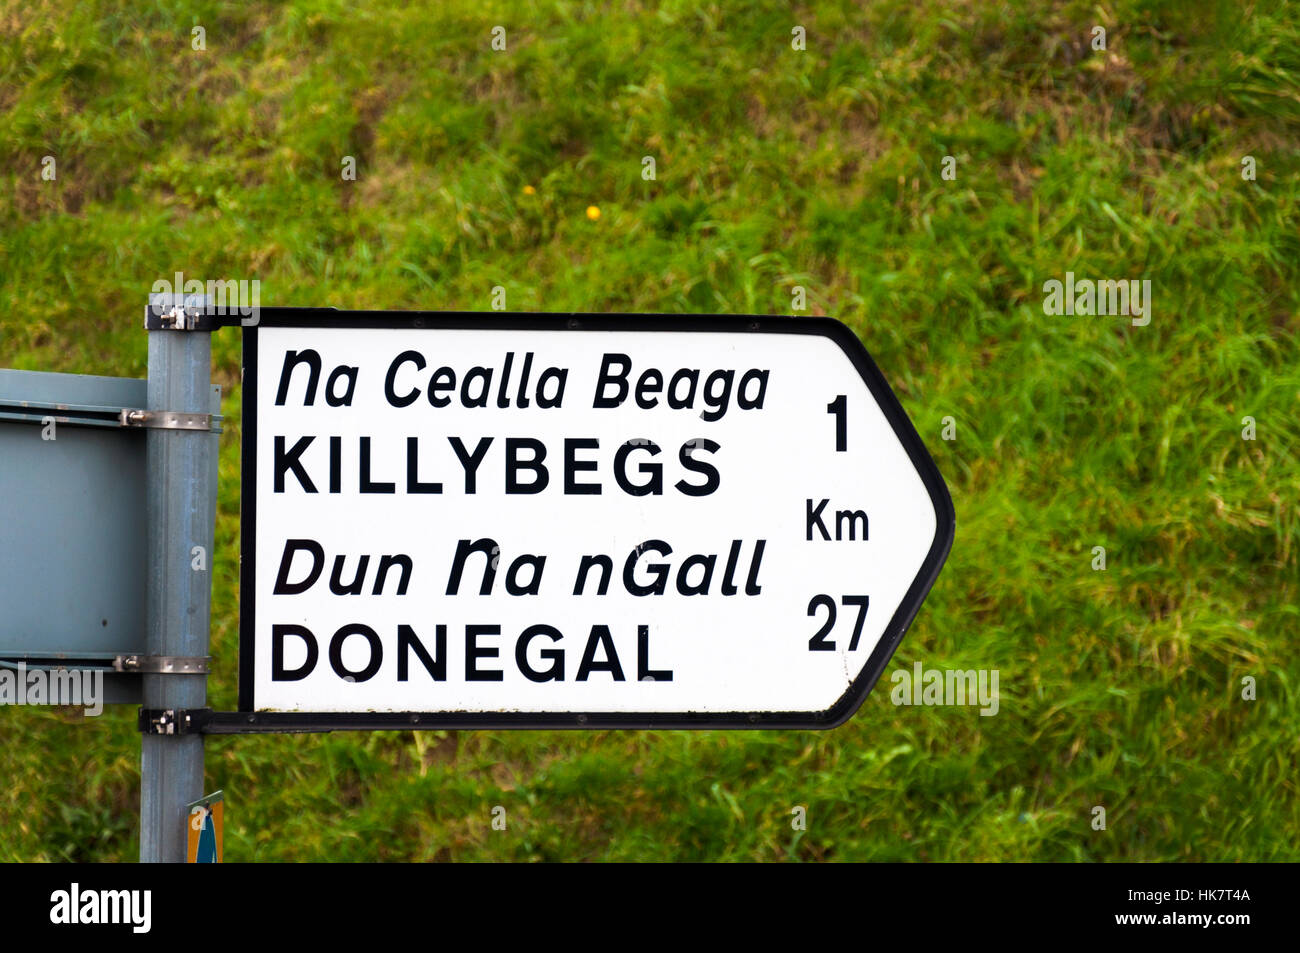 Sign signage in English and Irish Gaelic Killybegs and Donegal Town - Stock Image